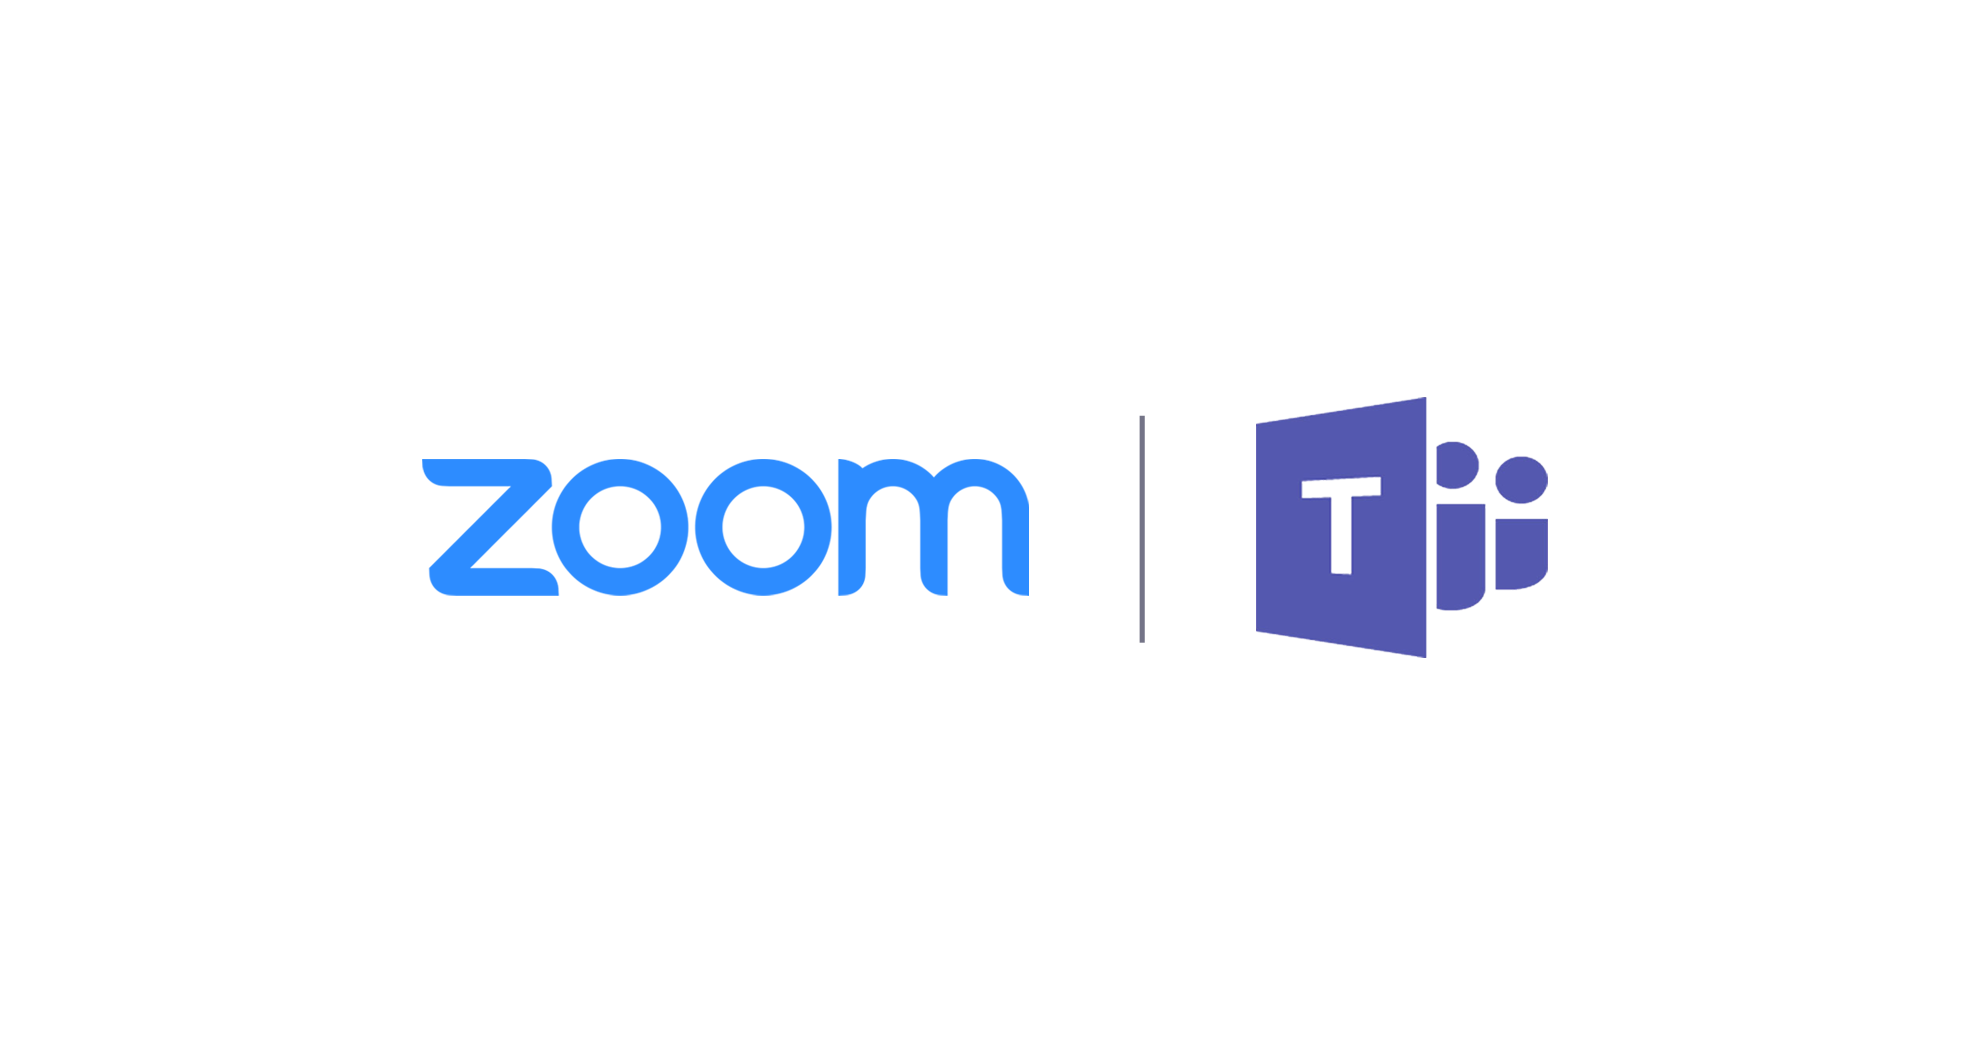 Zoom S Teams App Expands Video Functionality In Microsoft